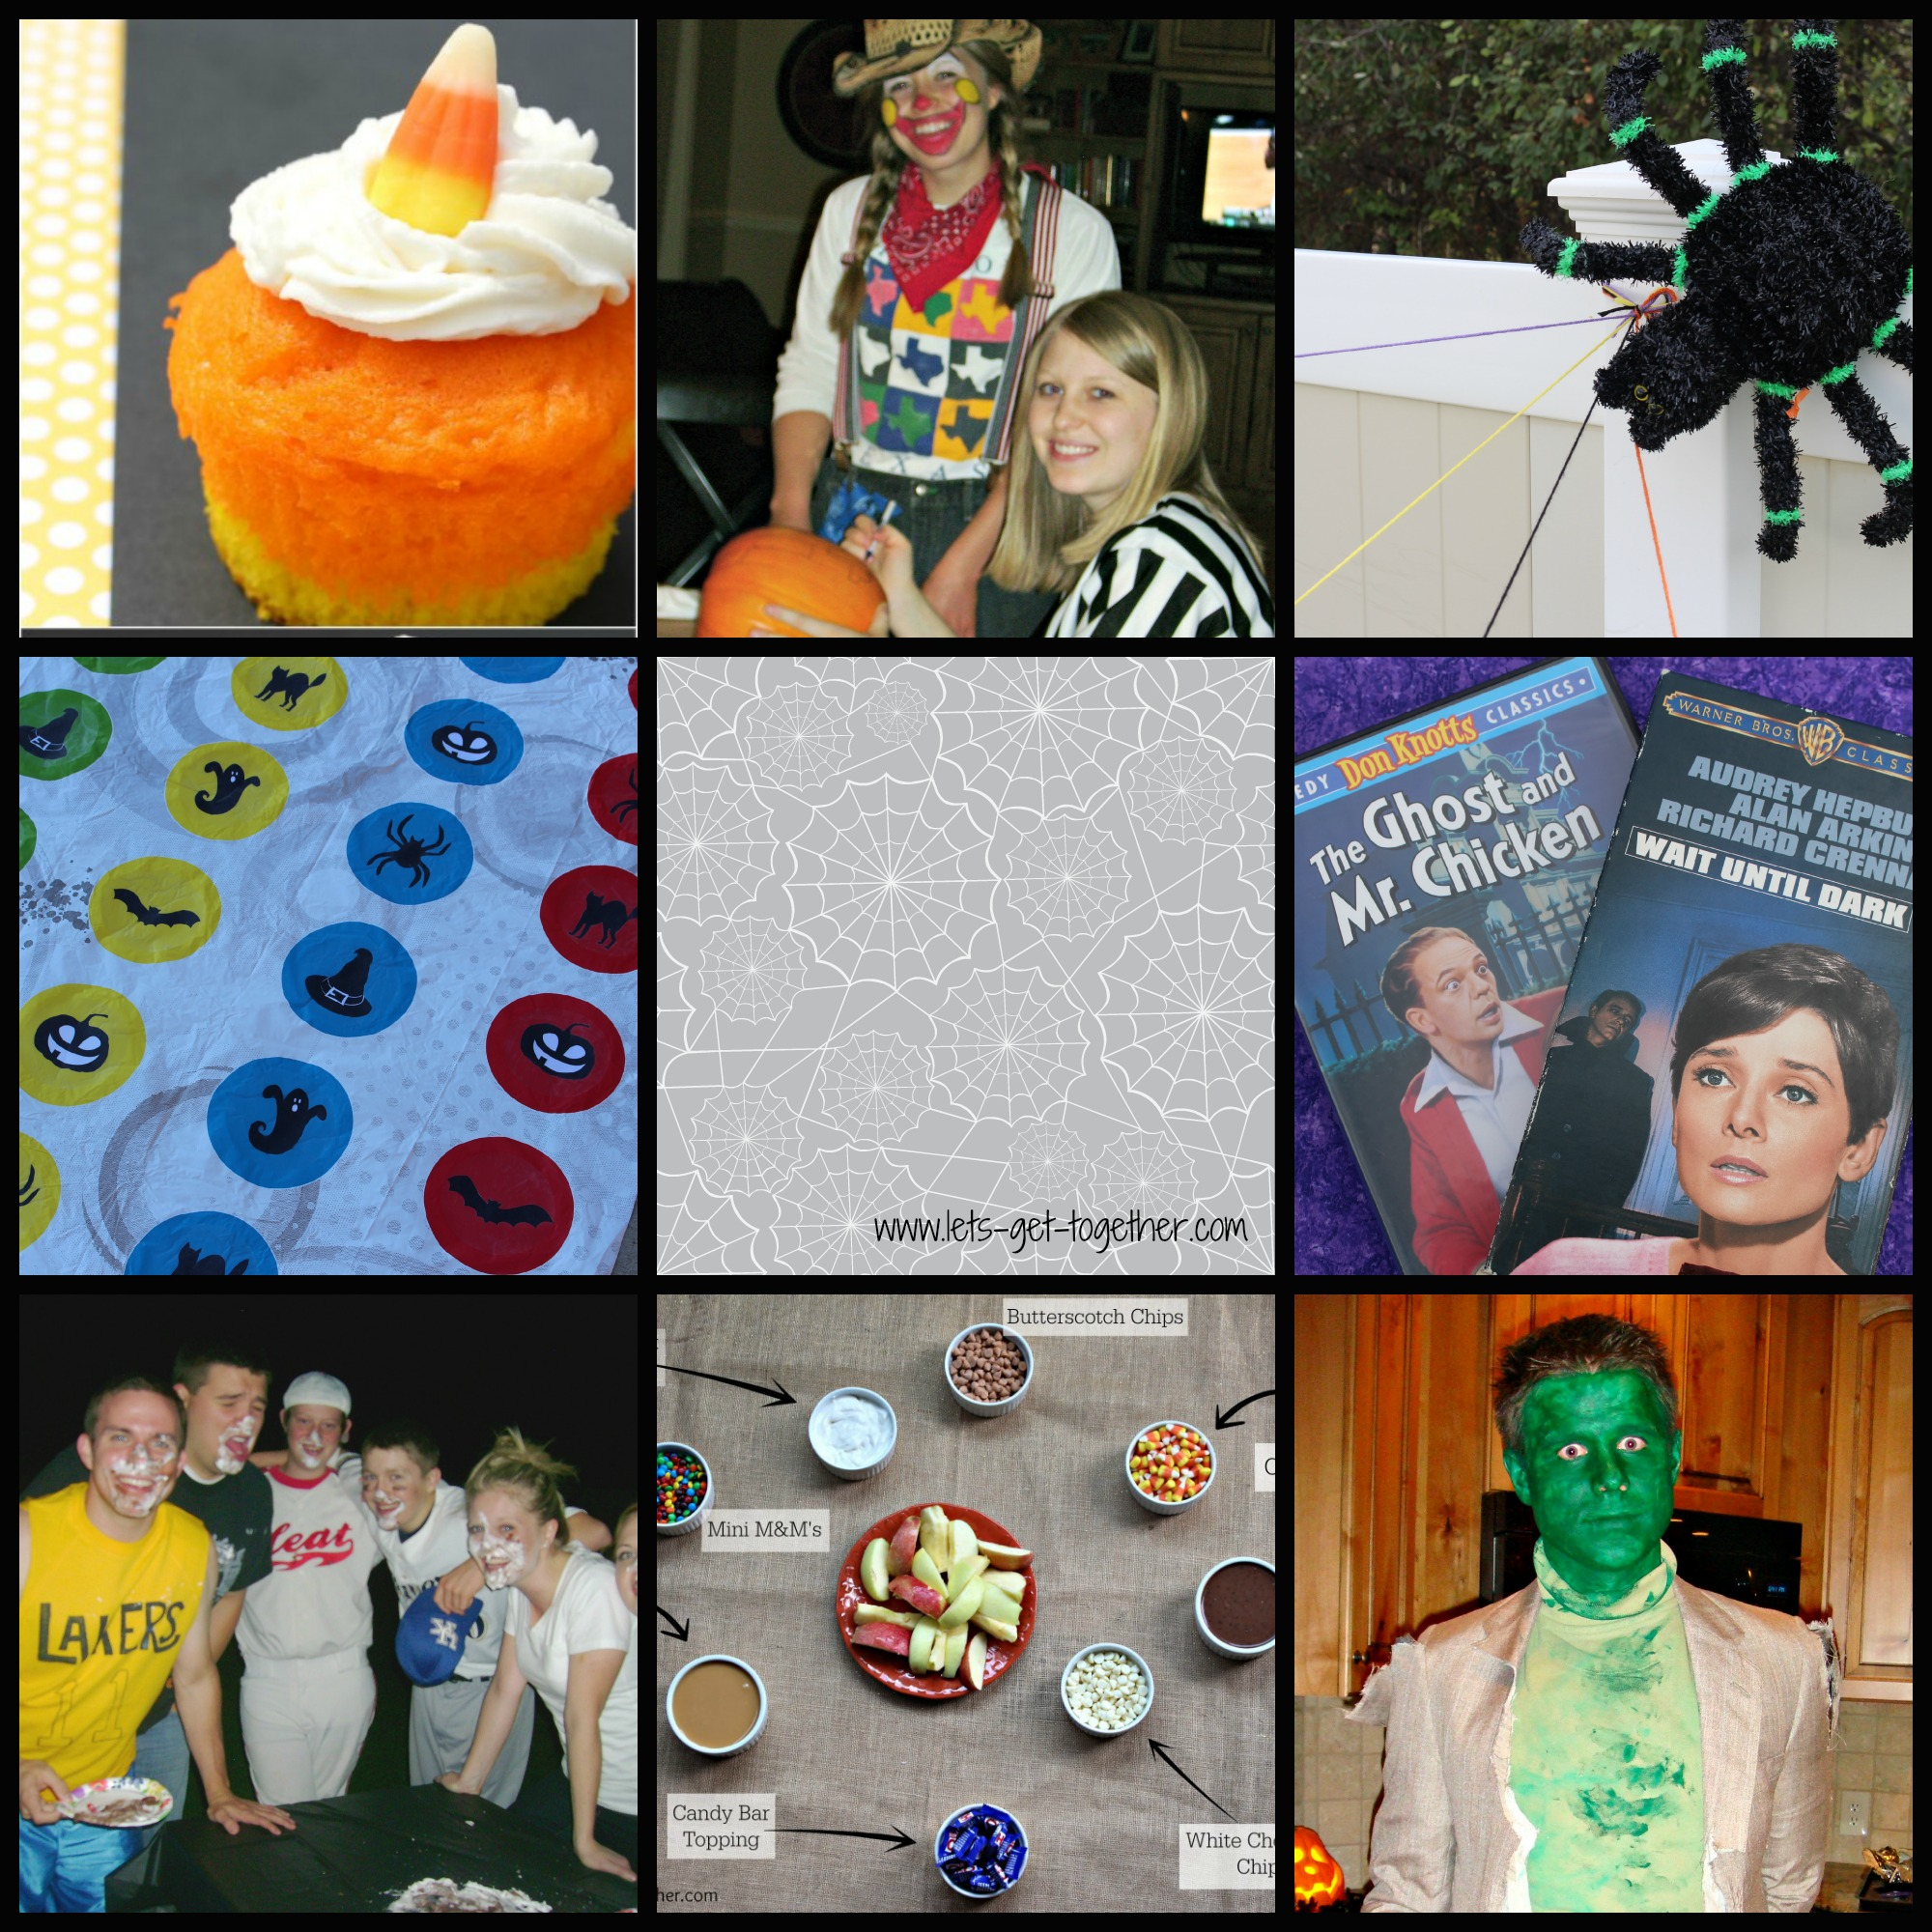 10 Things You Need for a Family-Style Halloween Party